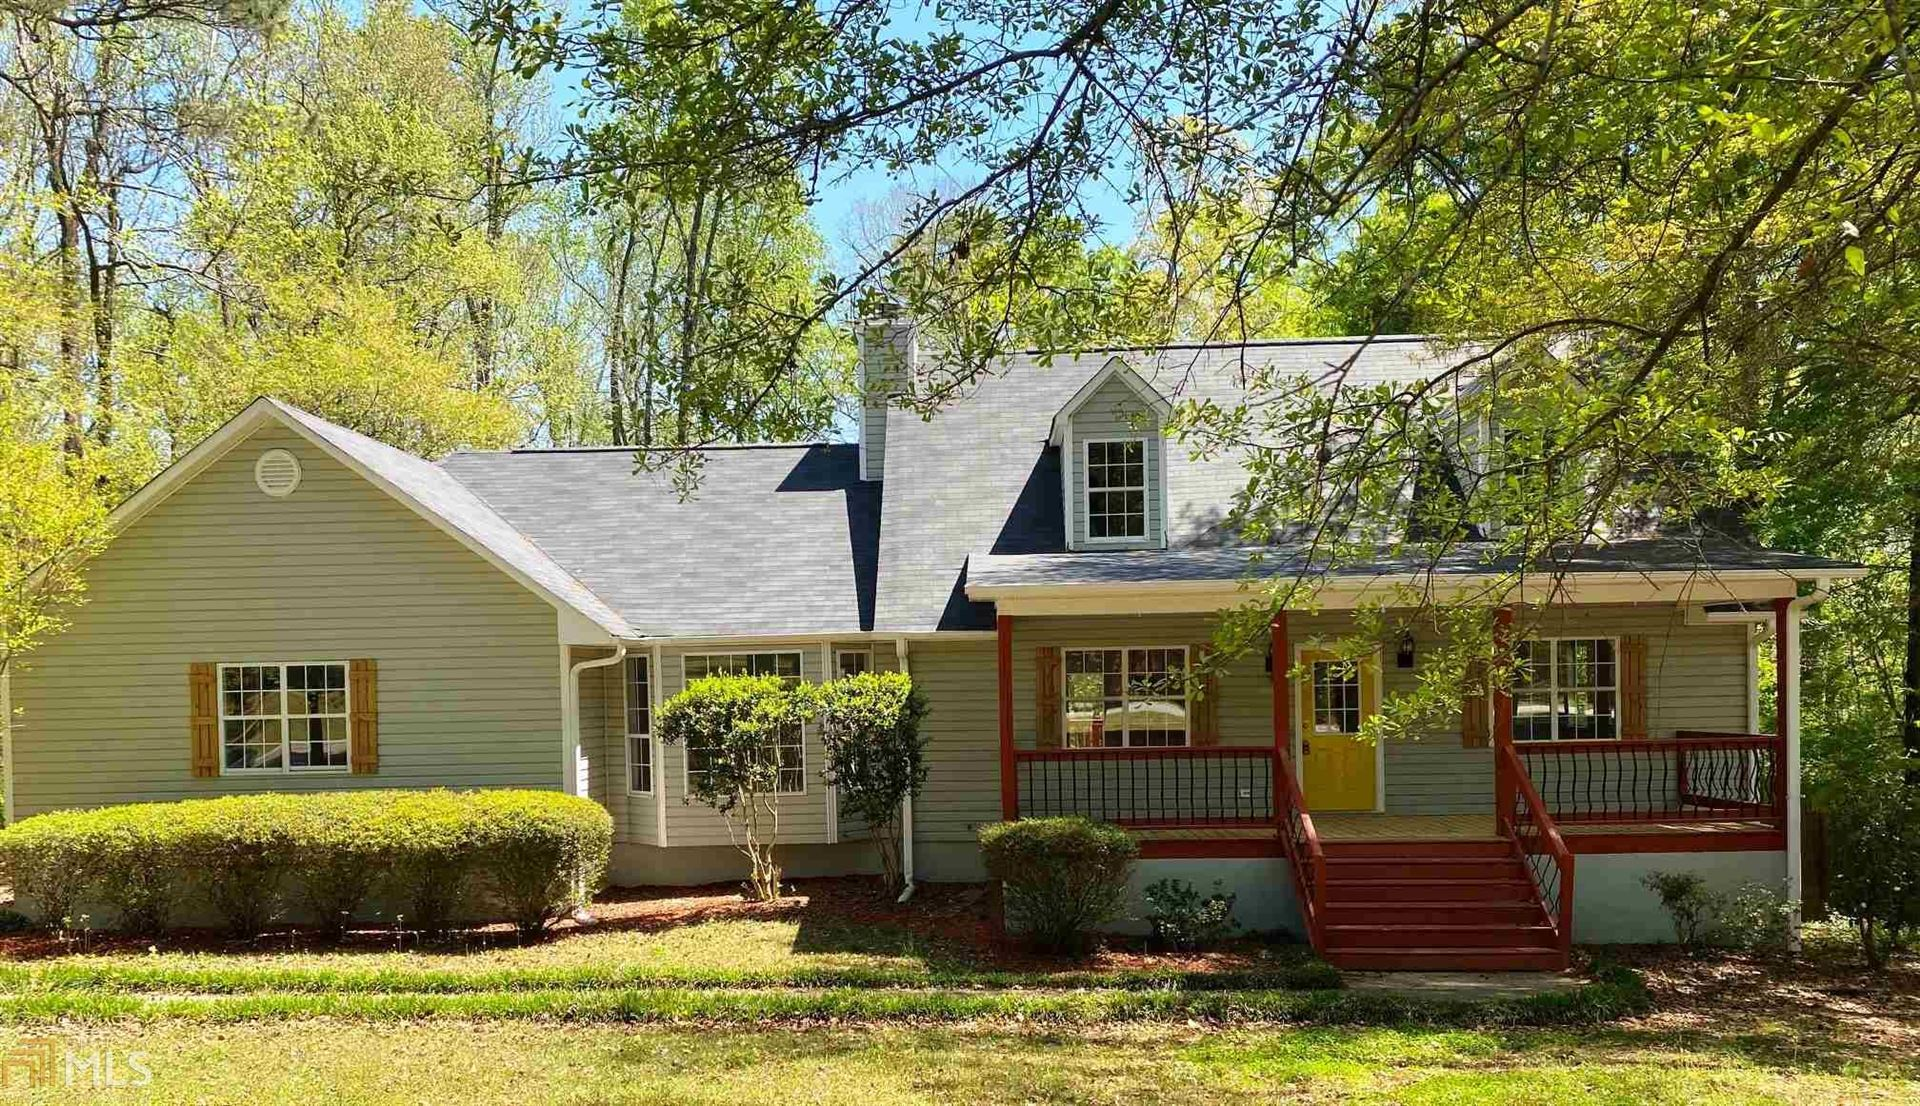 641 Fairmont Dr, Macon, GA 31210 - MLS#: 8955727